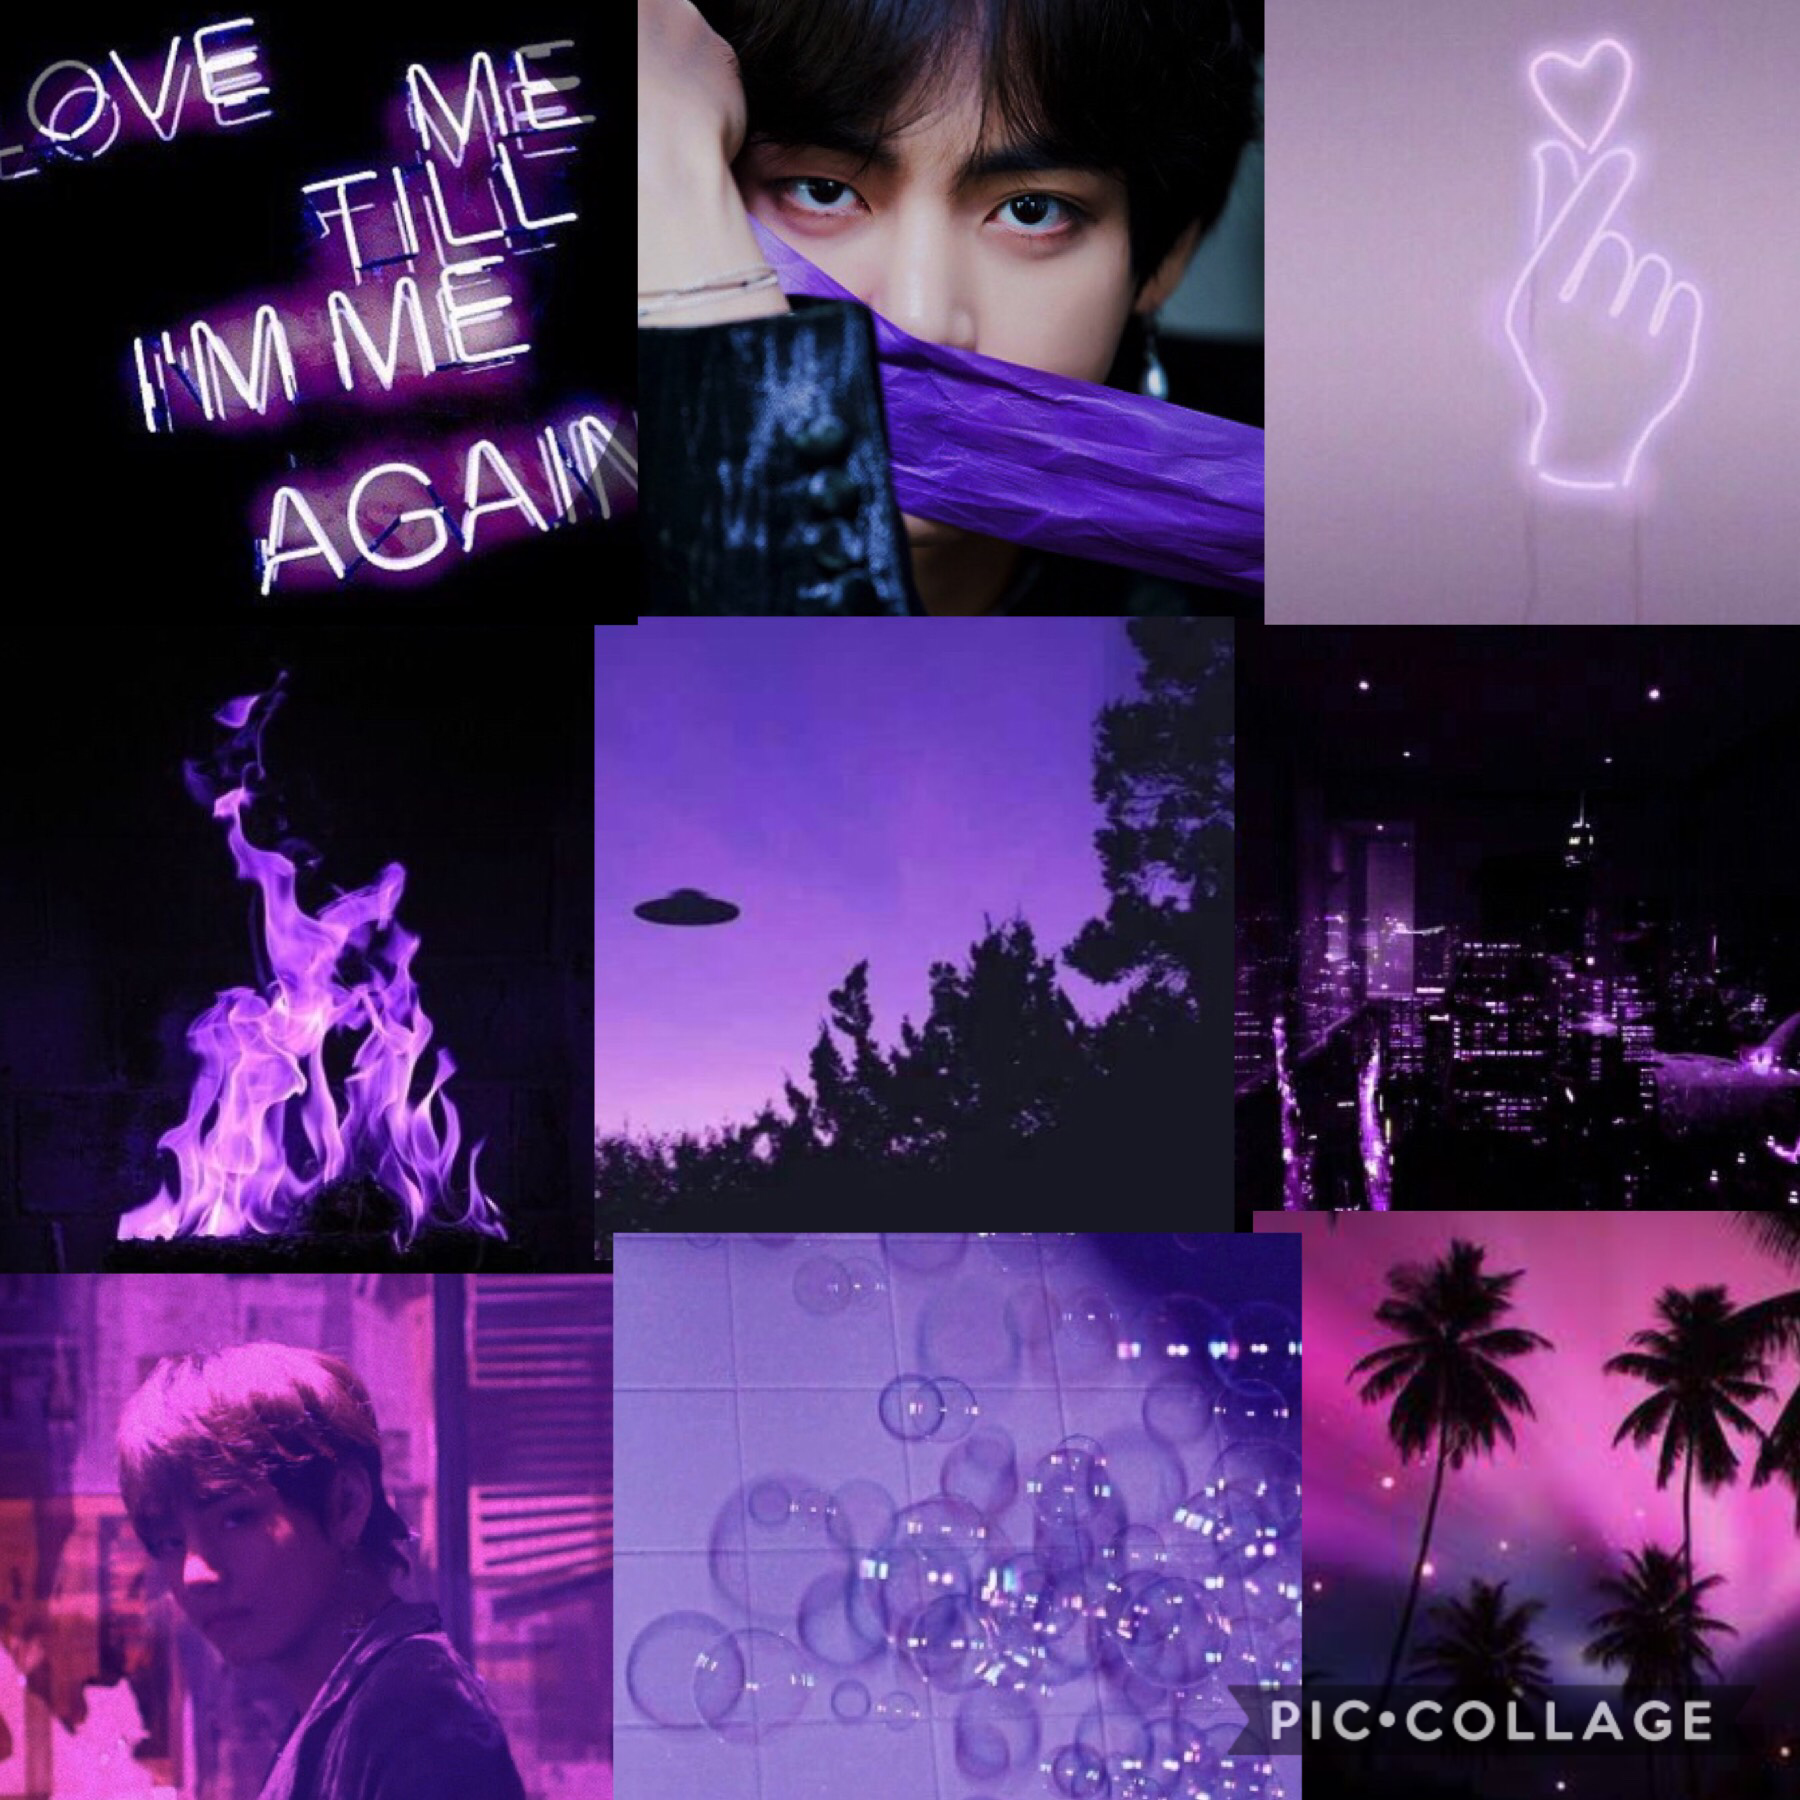 💜tap💜 I made this imperfect because that's what we are. Humans are imperfect, the world is imperfect, but we are beautiful. Like this collage. Hopefully.